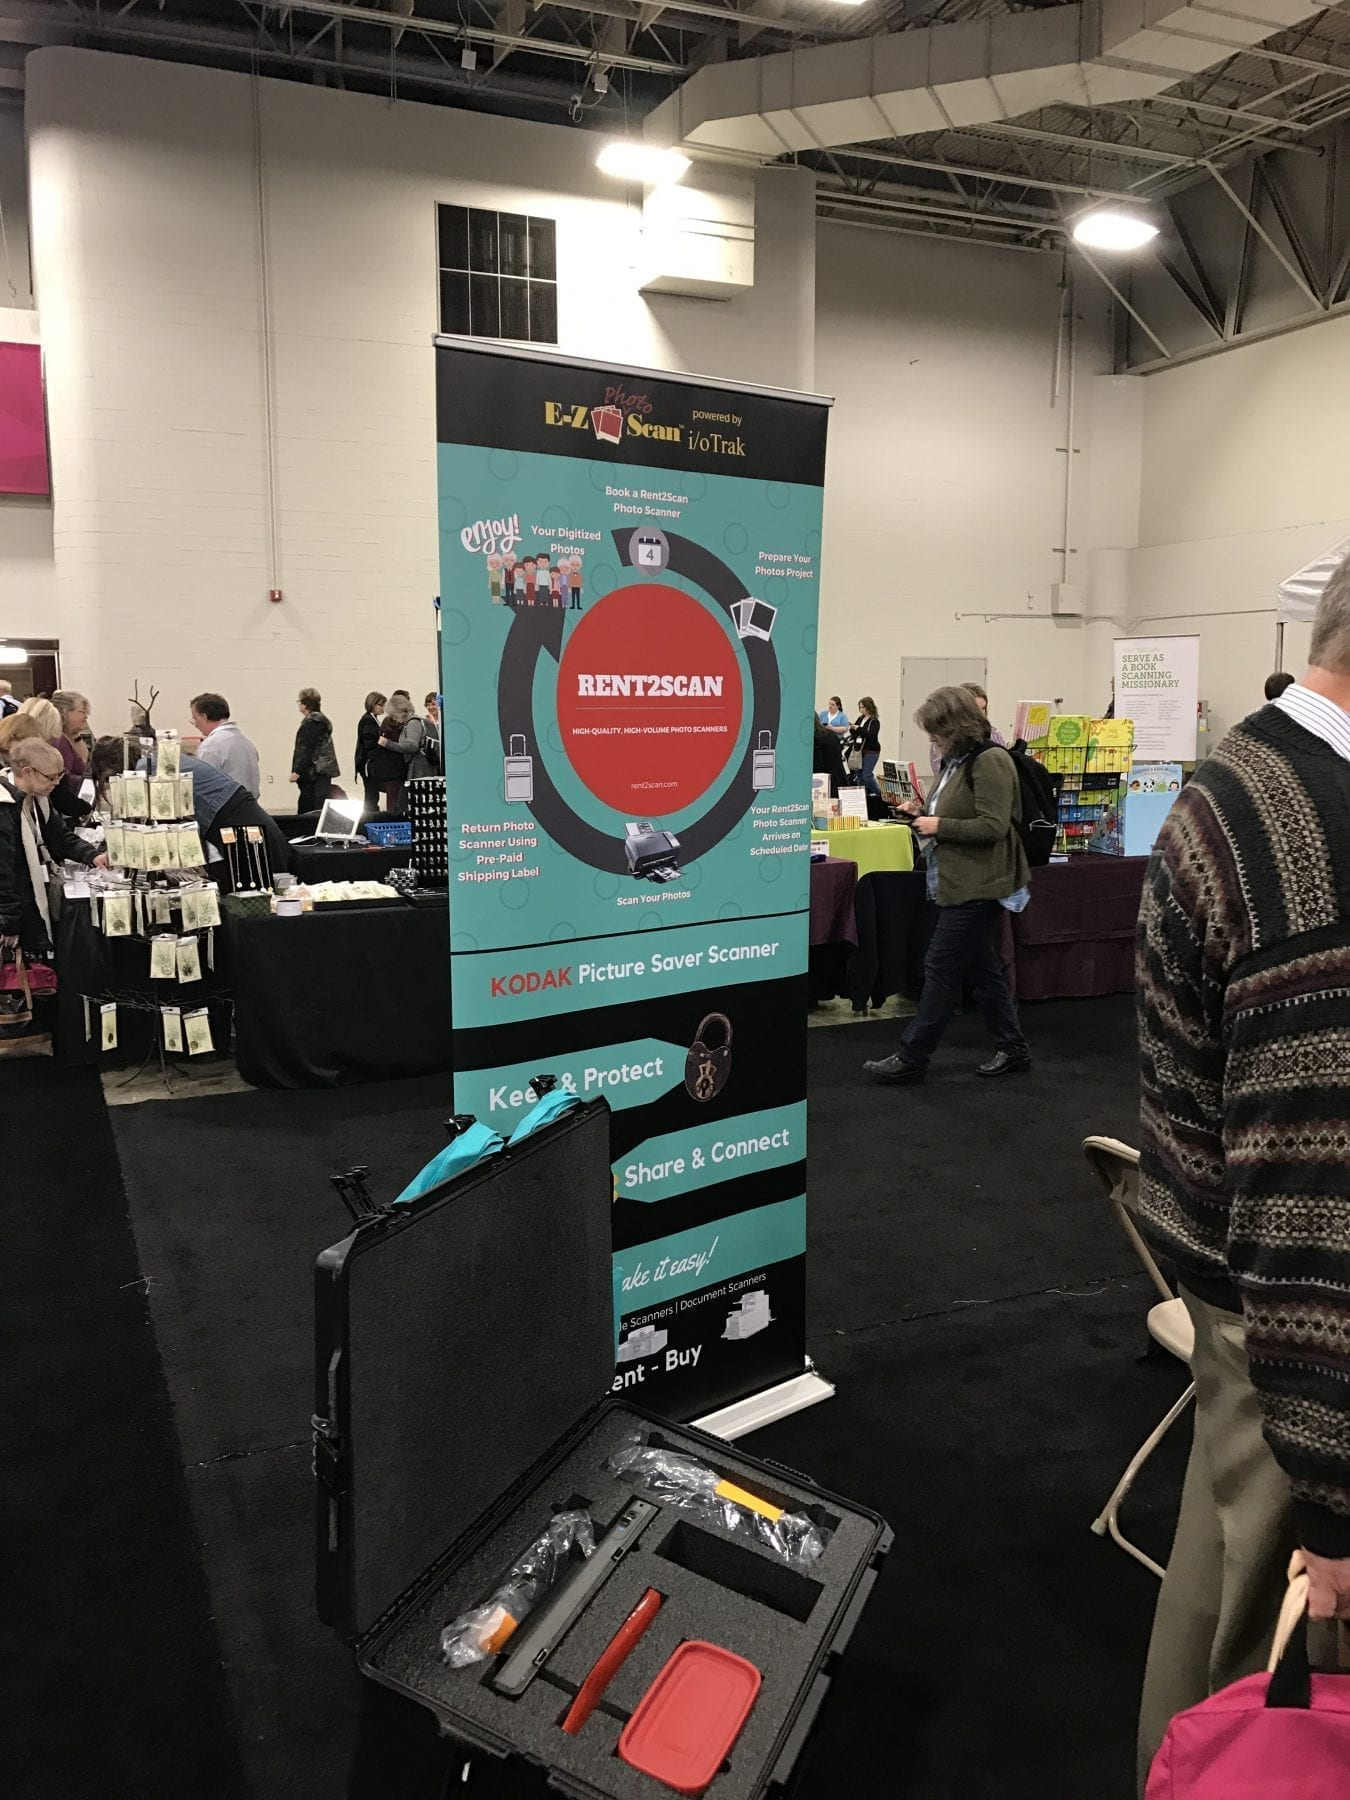 E-Z-Photo Scan at RootsTech 2017